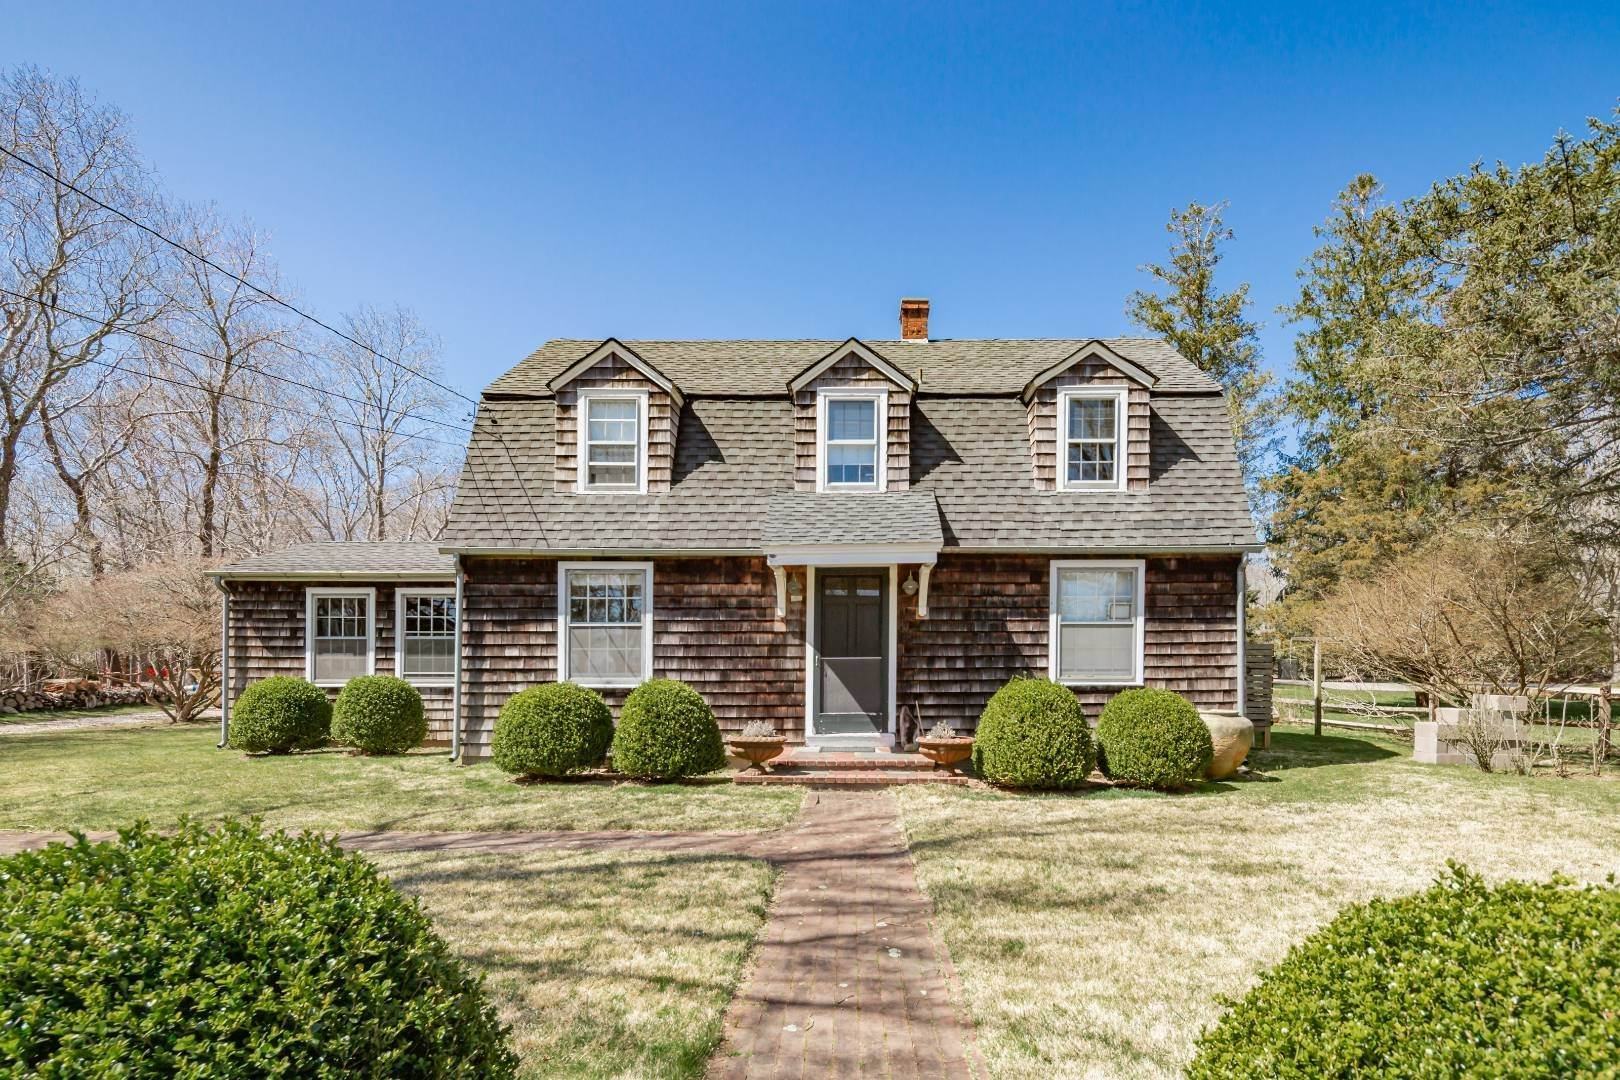 Single Family Home for Sale at Timeless Springs Farmhouse Compound 943 Springs Fireplace Road, East Hampton, NY 11937